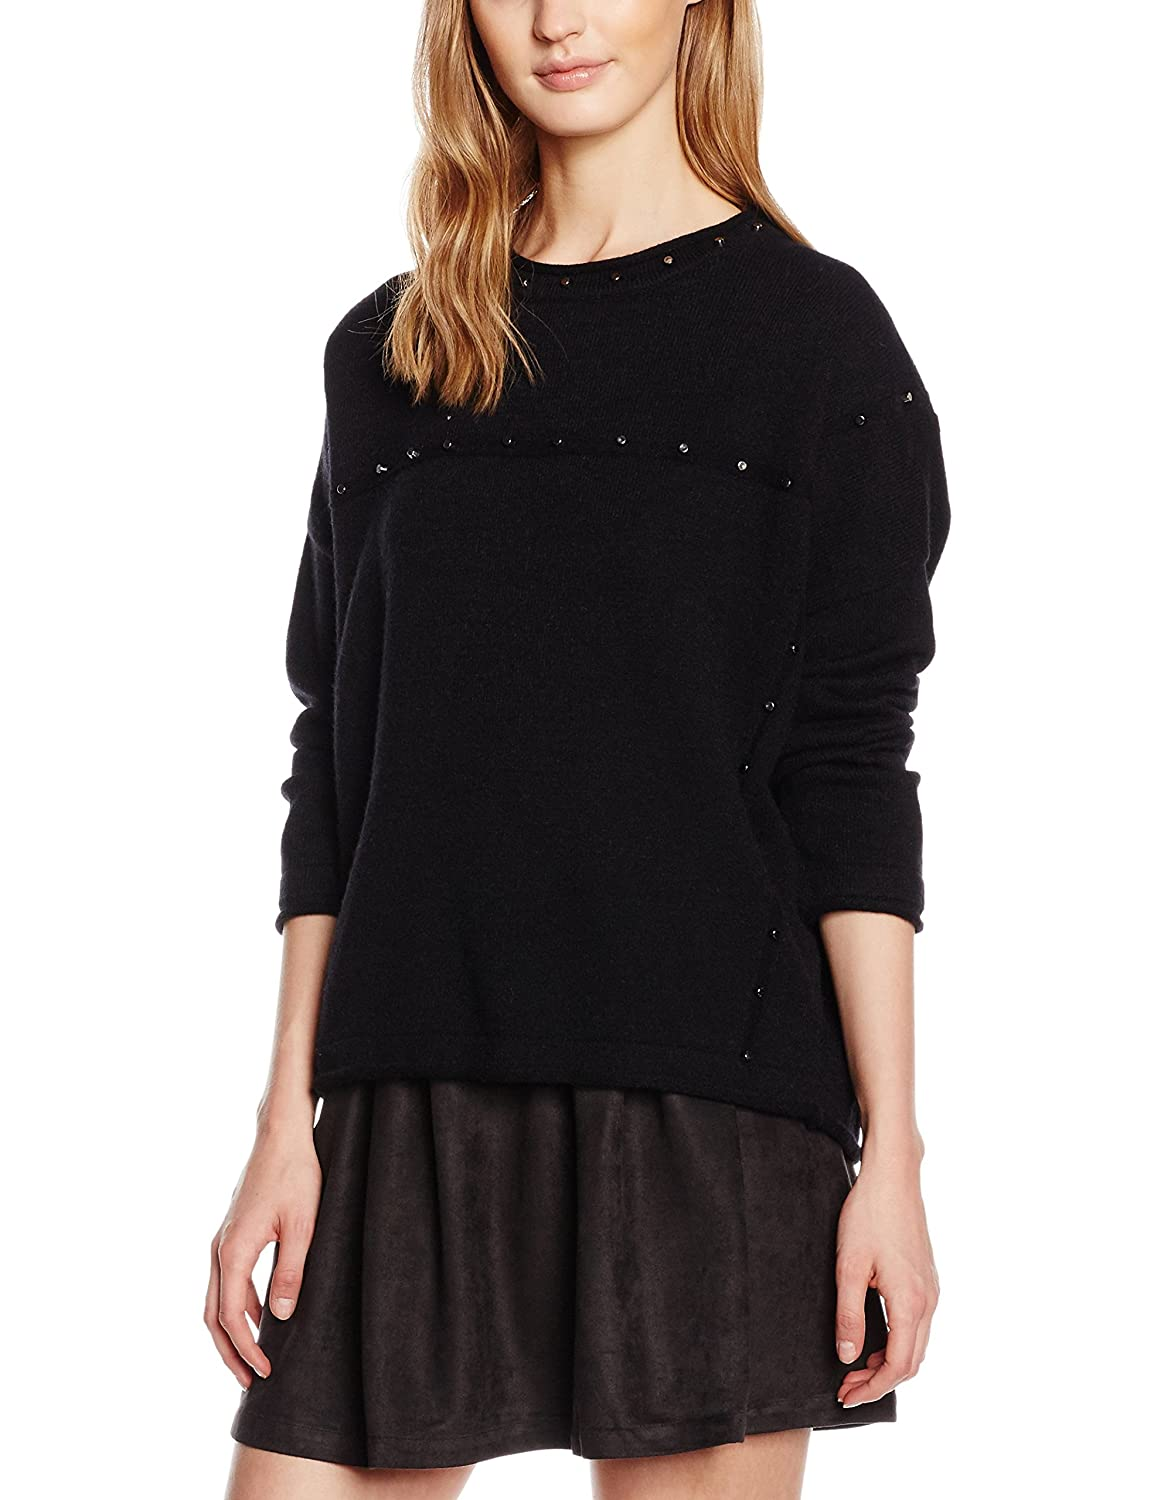 Molly Bracken Damen Pullover